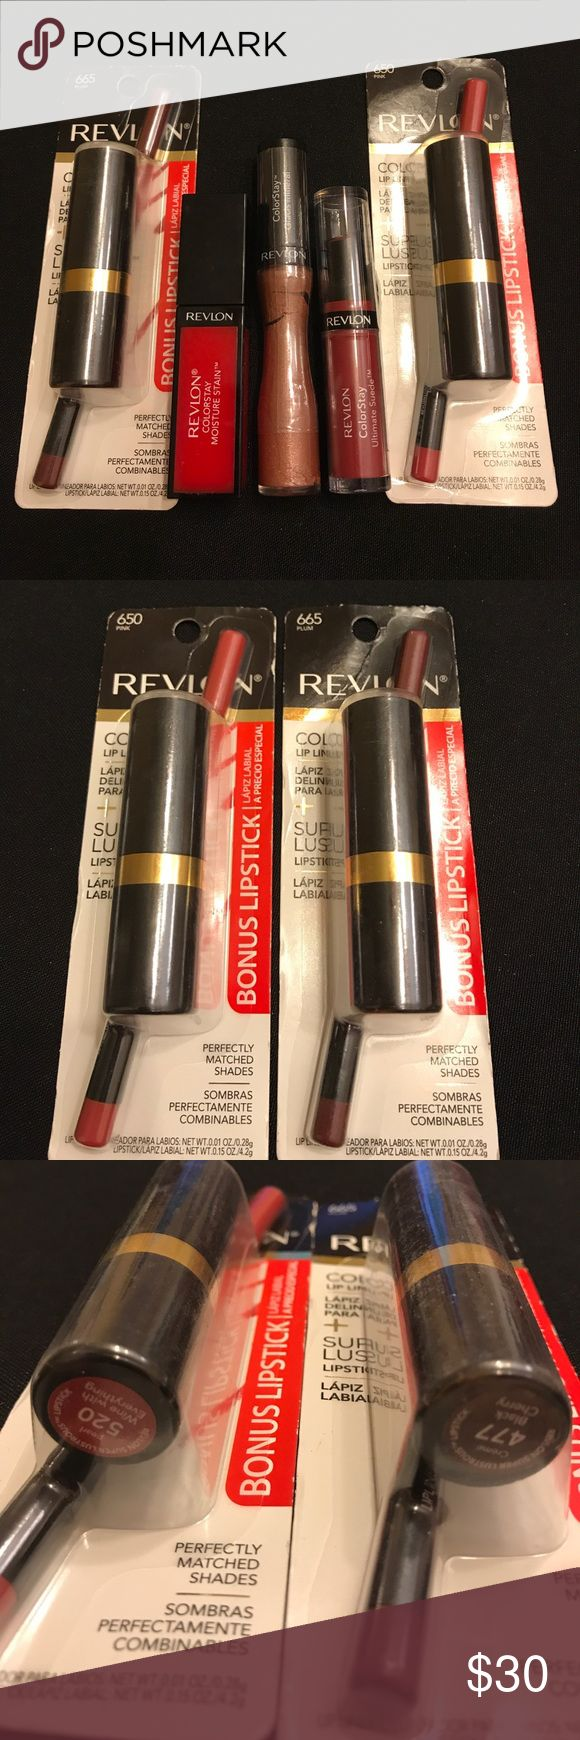 Revlon Lipsticks & Lip Liners. All New Revlon Lipsticks & Lip Liners. All New revlon 650 Lip liner 520 wine with everything lipstick, Revlon 665 lip liner and 477 black cherry lipstick, color stay ultimate suede 02 genuine, Revlon color stay mineral lip glaze 530, Revlon color stay moist are staying 040 Sanguine sizzle Price is for all. :) Revlon Makeup Lipstick